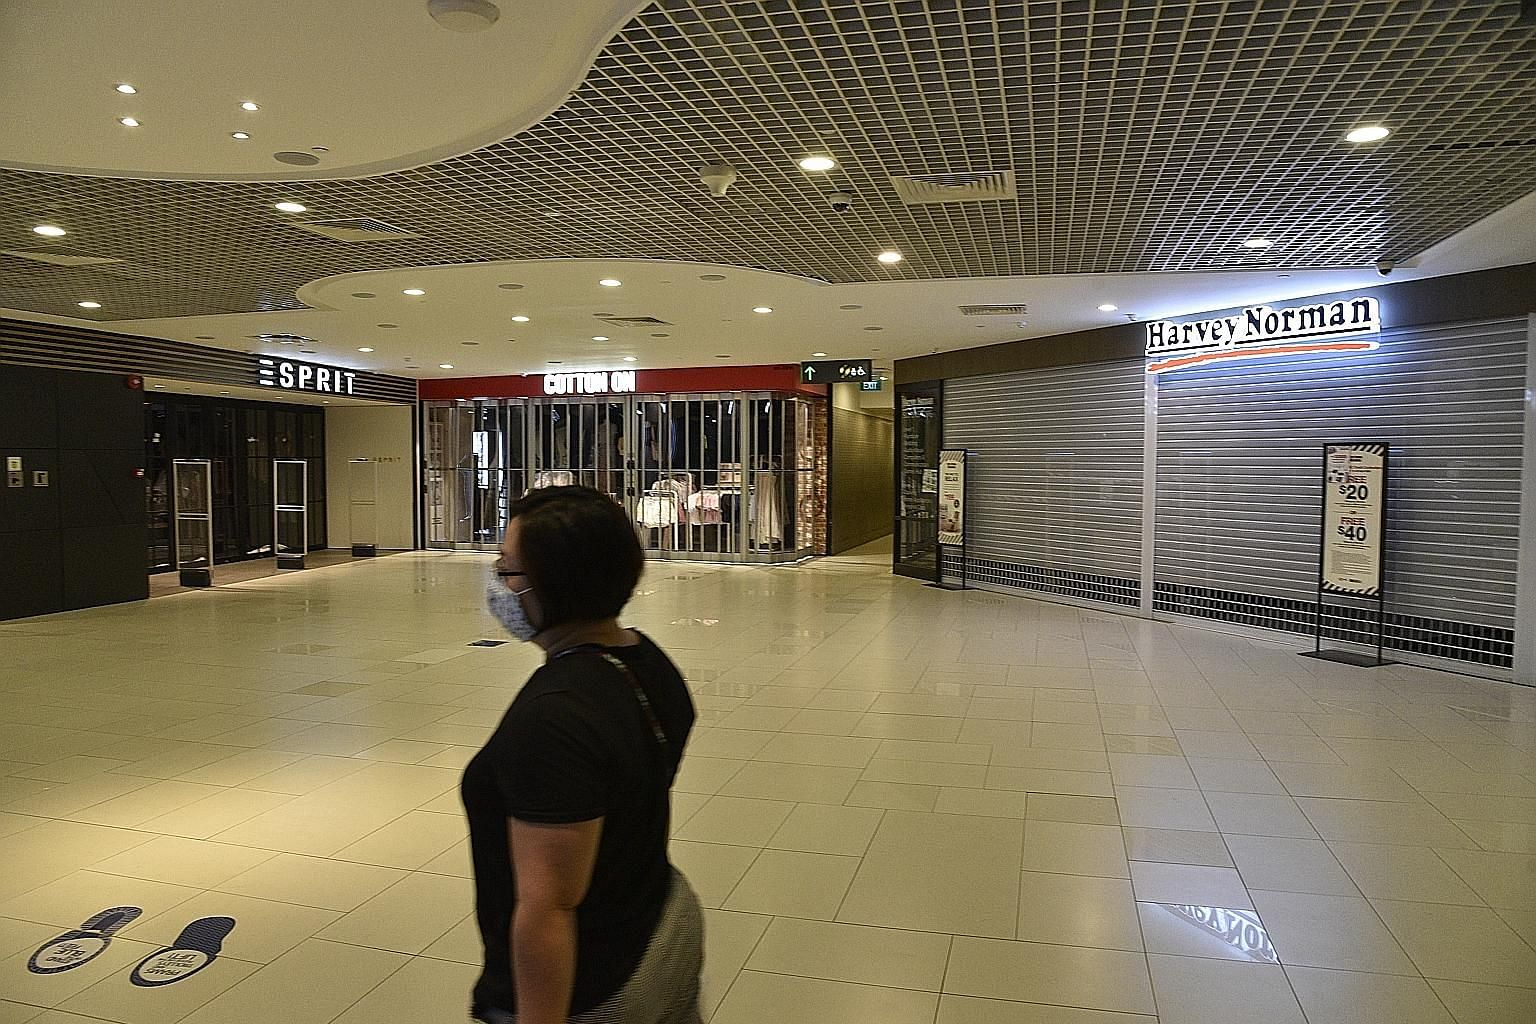 A near-empty Parkway Parade mall with most of its shops closed in May amid Singapore's circuit breaker. Retail sales that month suffered their biggest year-on-year fall since record-keeping began in 1986. Like in April, only two categories of retail sales